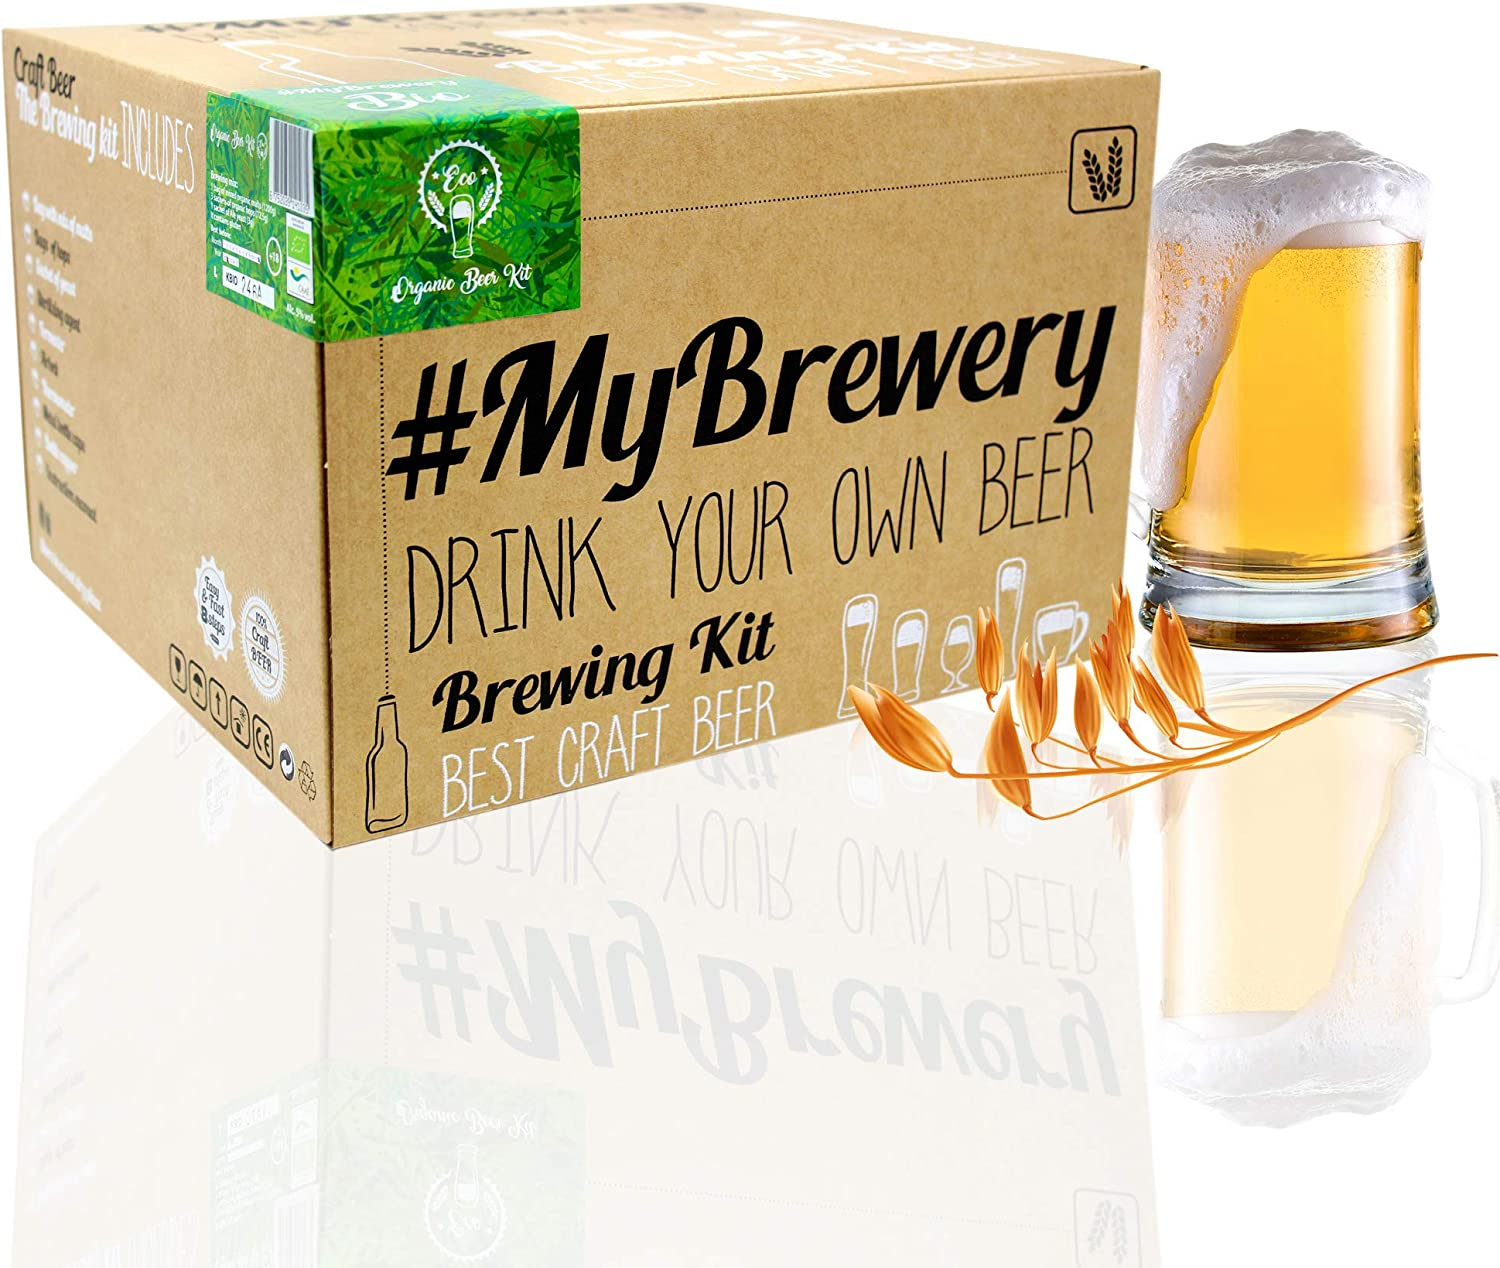 #Cervezanía MyBrewery Home Brewing Kit Bio Beer